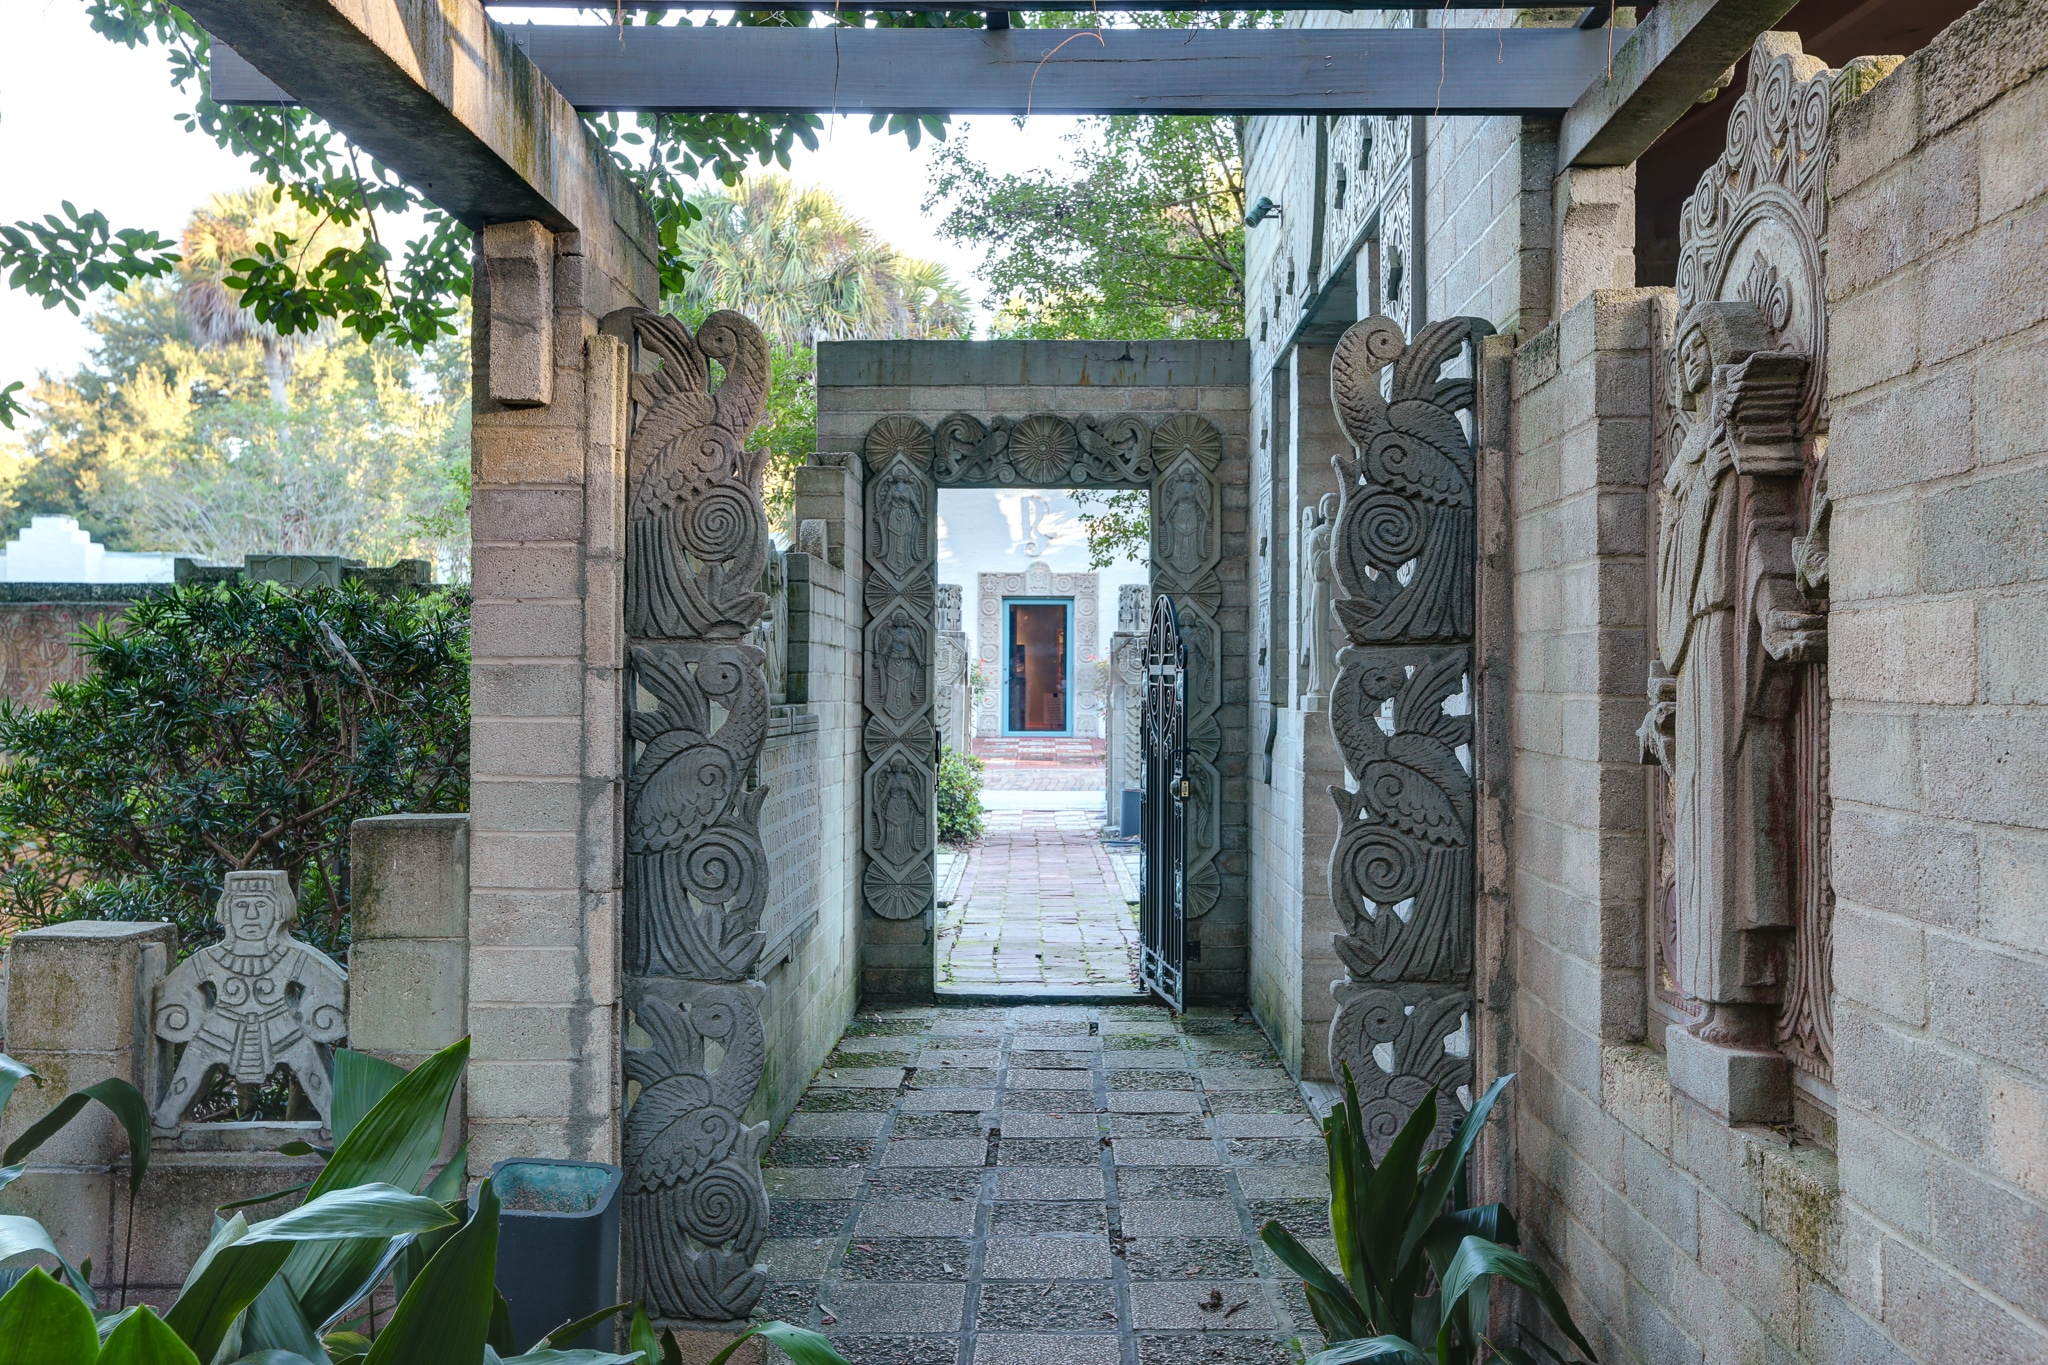 Image of the Mayan Courtyard entrance